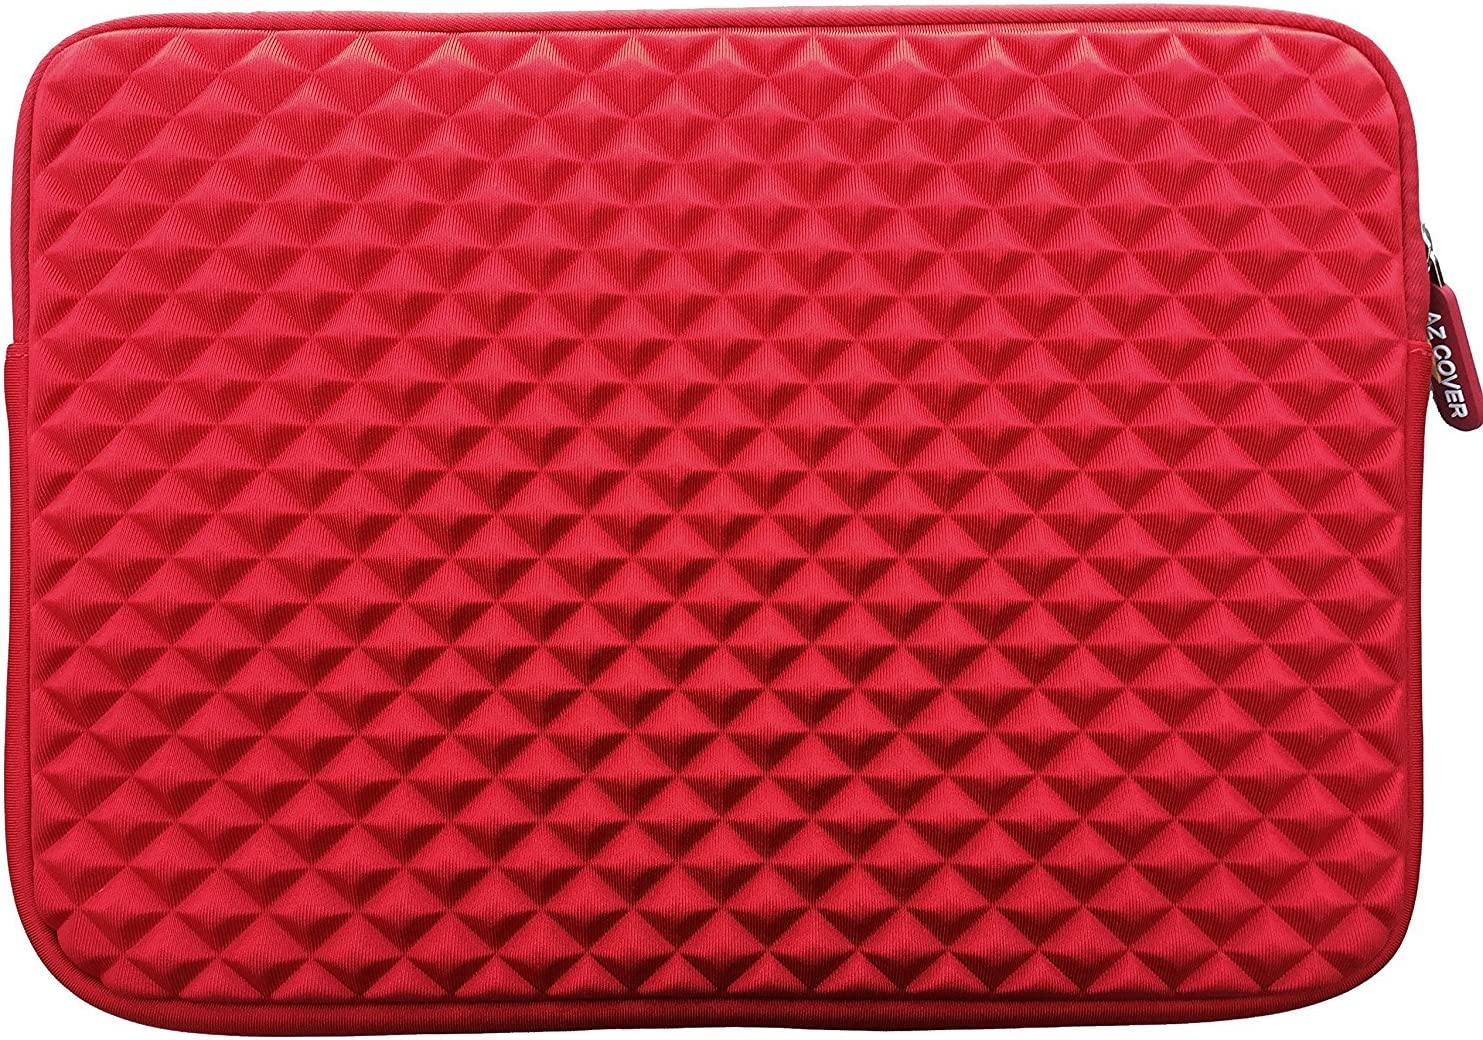 Red For Acer Chromebook R 13 Convertible 13.3-inch CB5-312T-K5X4 AZ-Cover 13.3-Inch Simplicity Stylish Diamond Foam Shock-Resistant Neoprene Sleeve